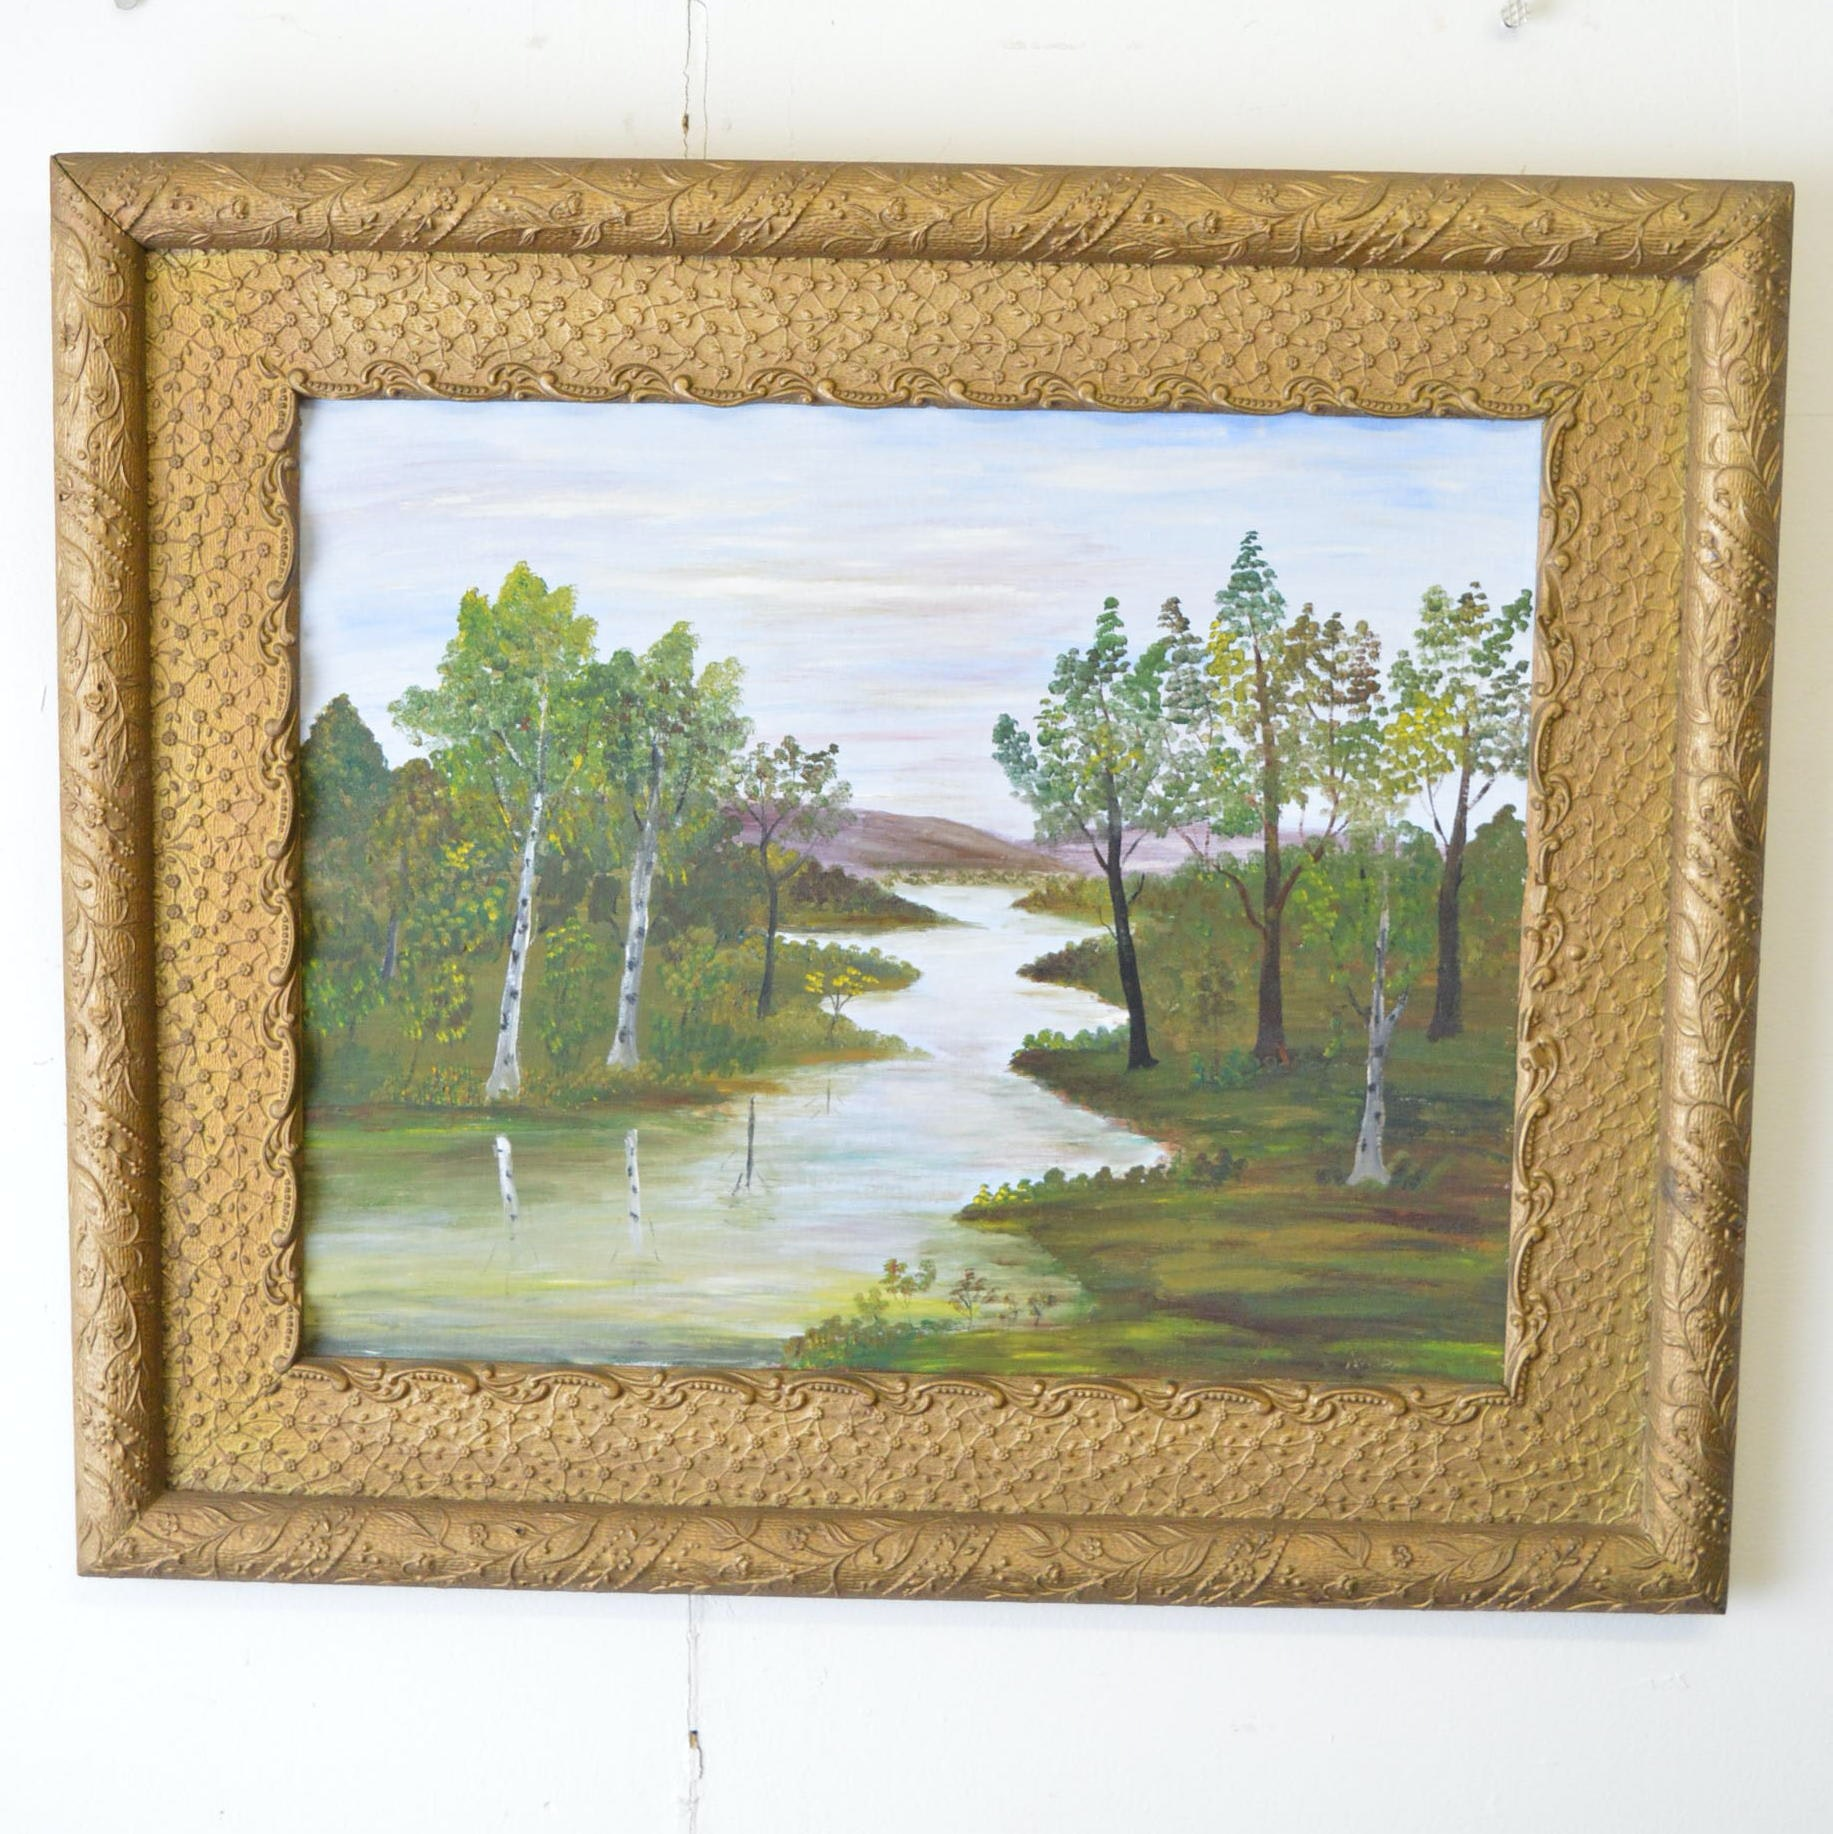 Oil Painting on Canvas of a Meandering River